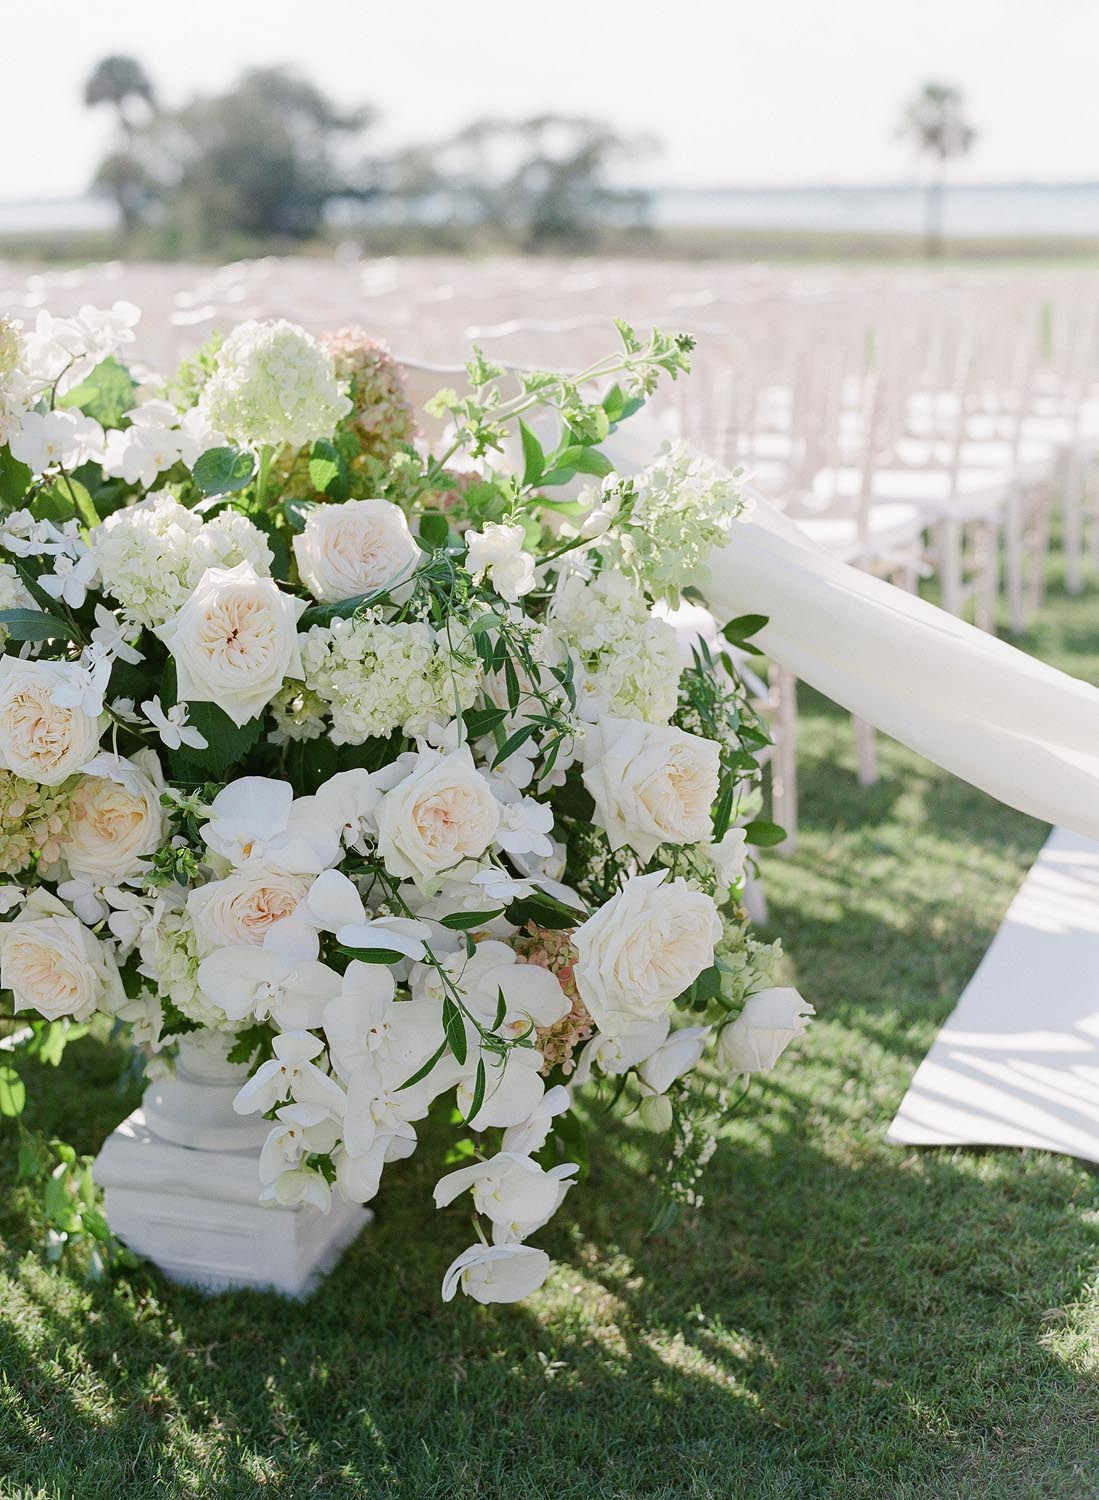 Large lush white ceremony flowers with roses and orchids. Wedding planning and design by A Charleston Bride.